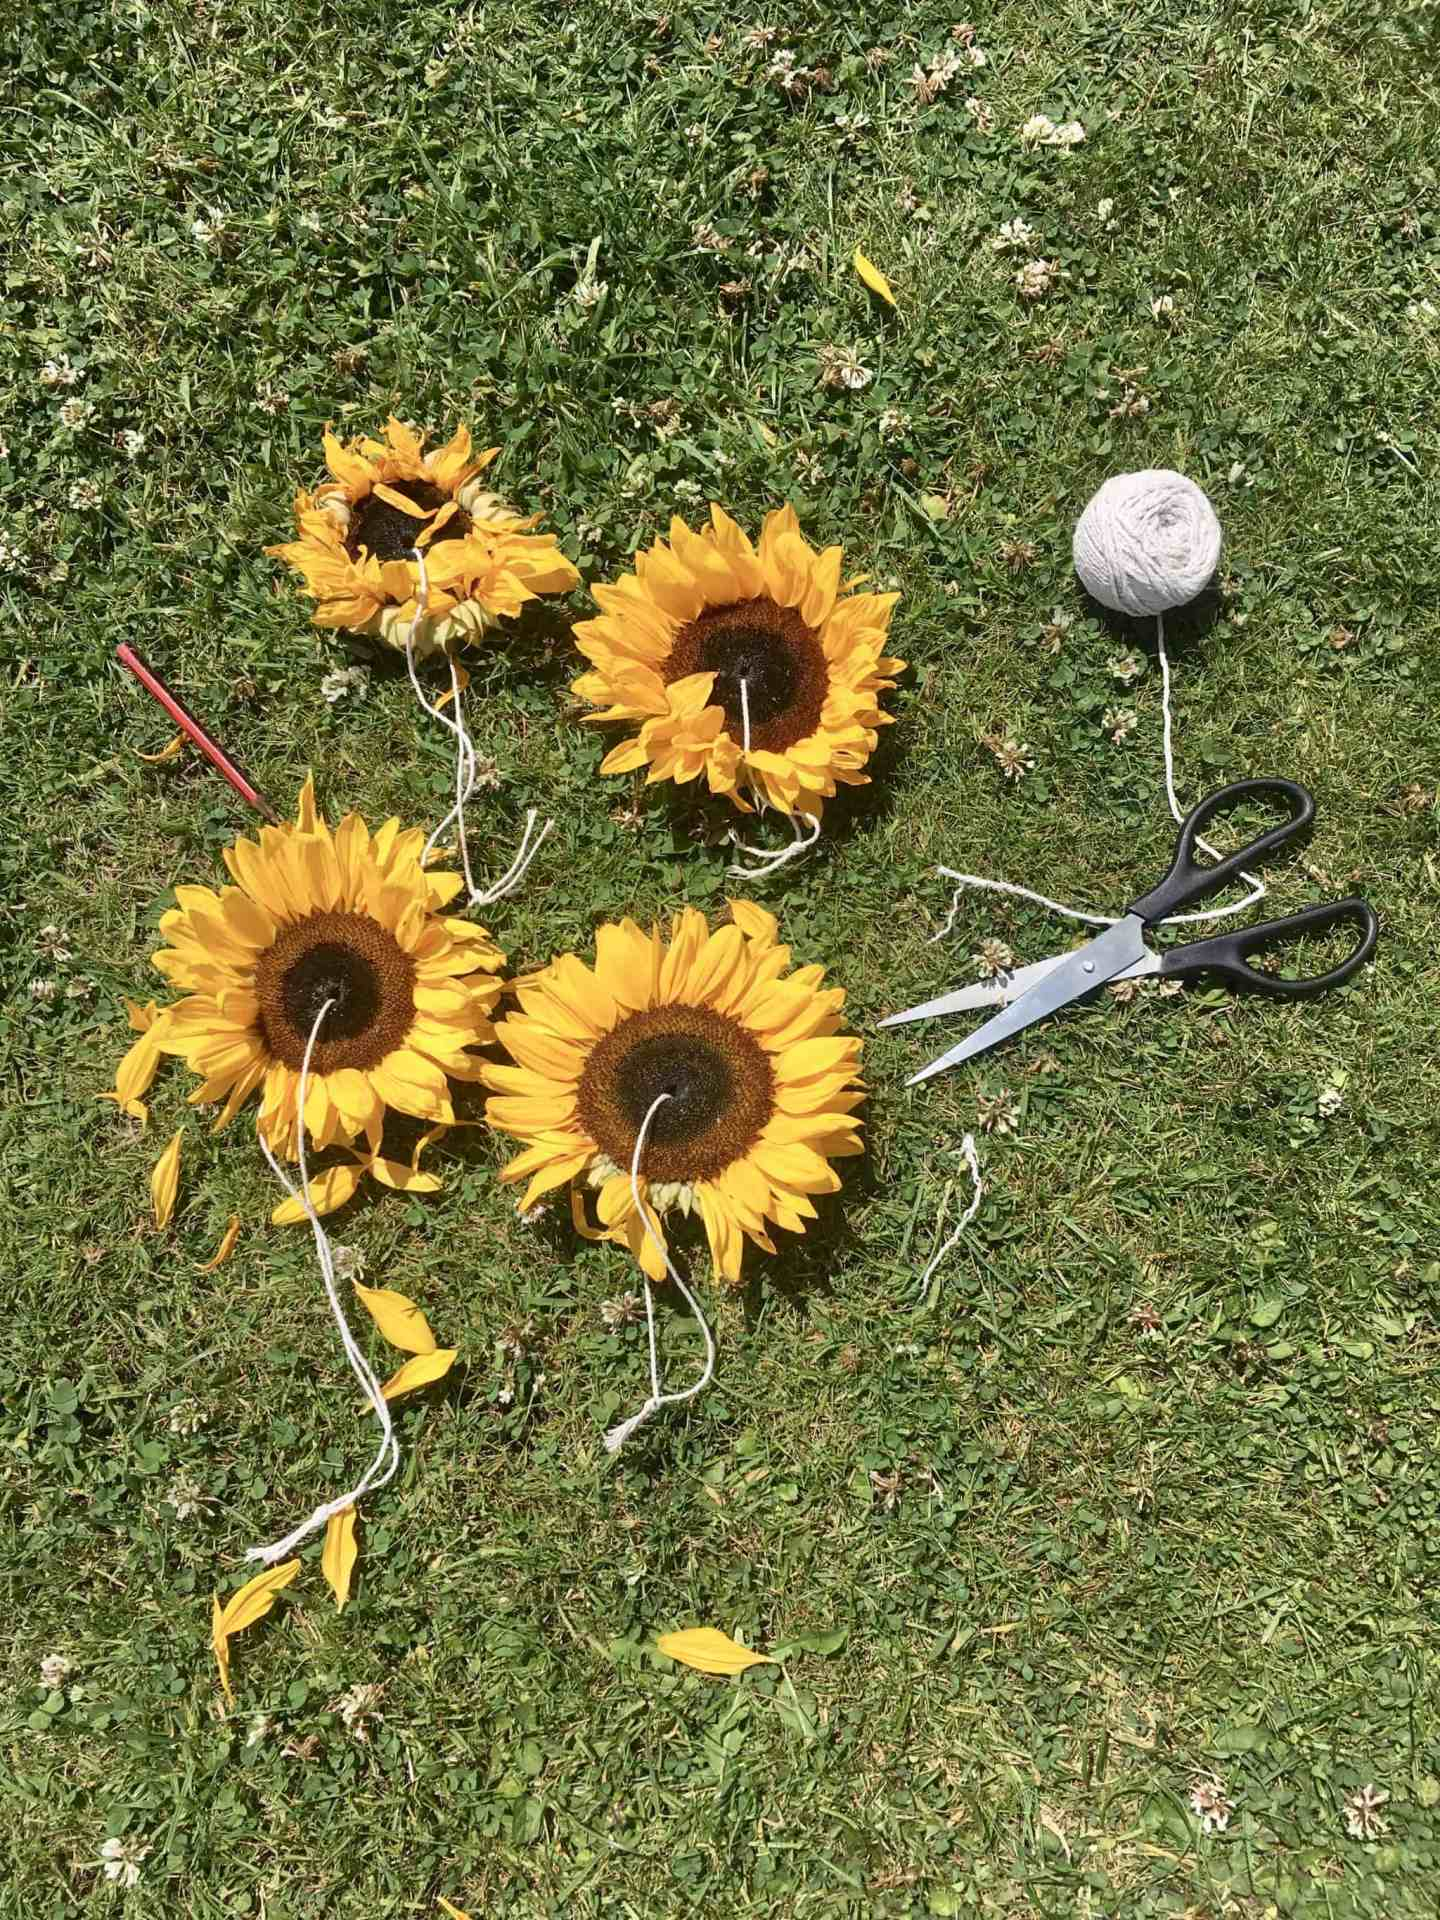 How To Make Sunflower Bird Feeders by GinGin & Roo